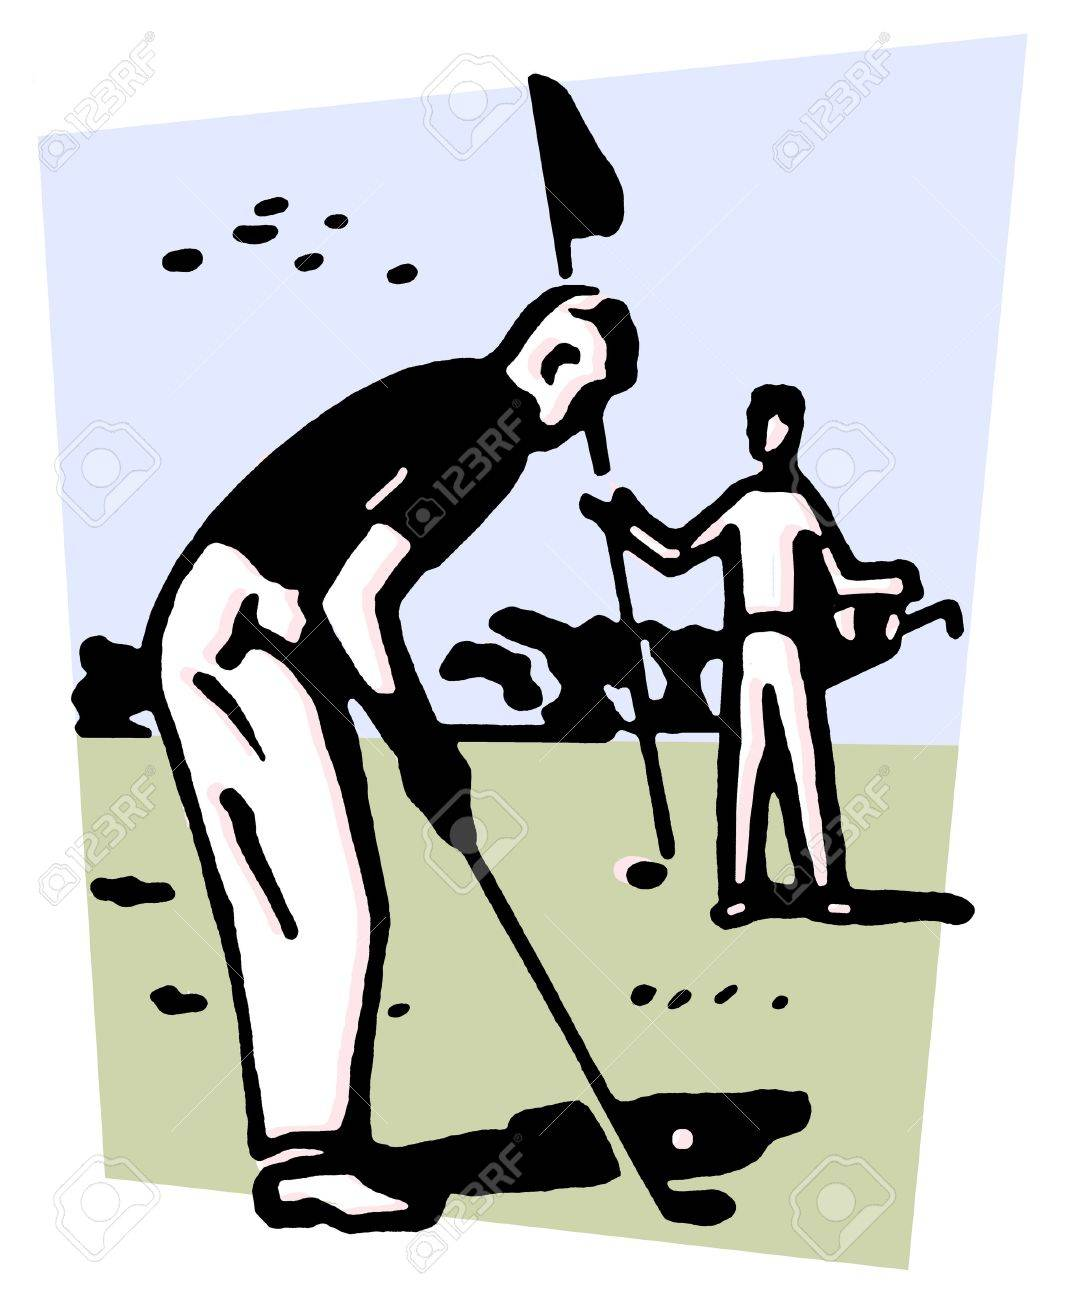 An illustration of a man playing golf Stock Photo - 14917354